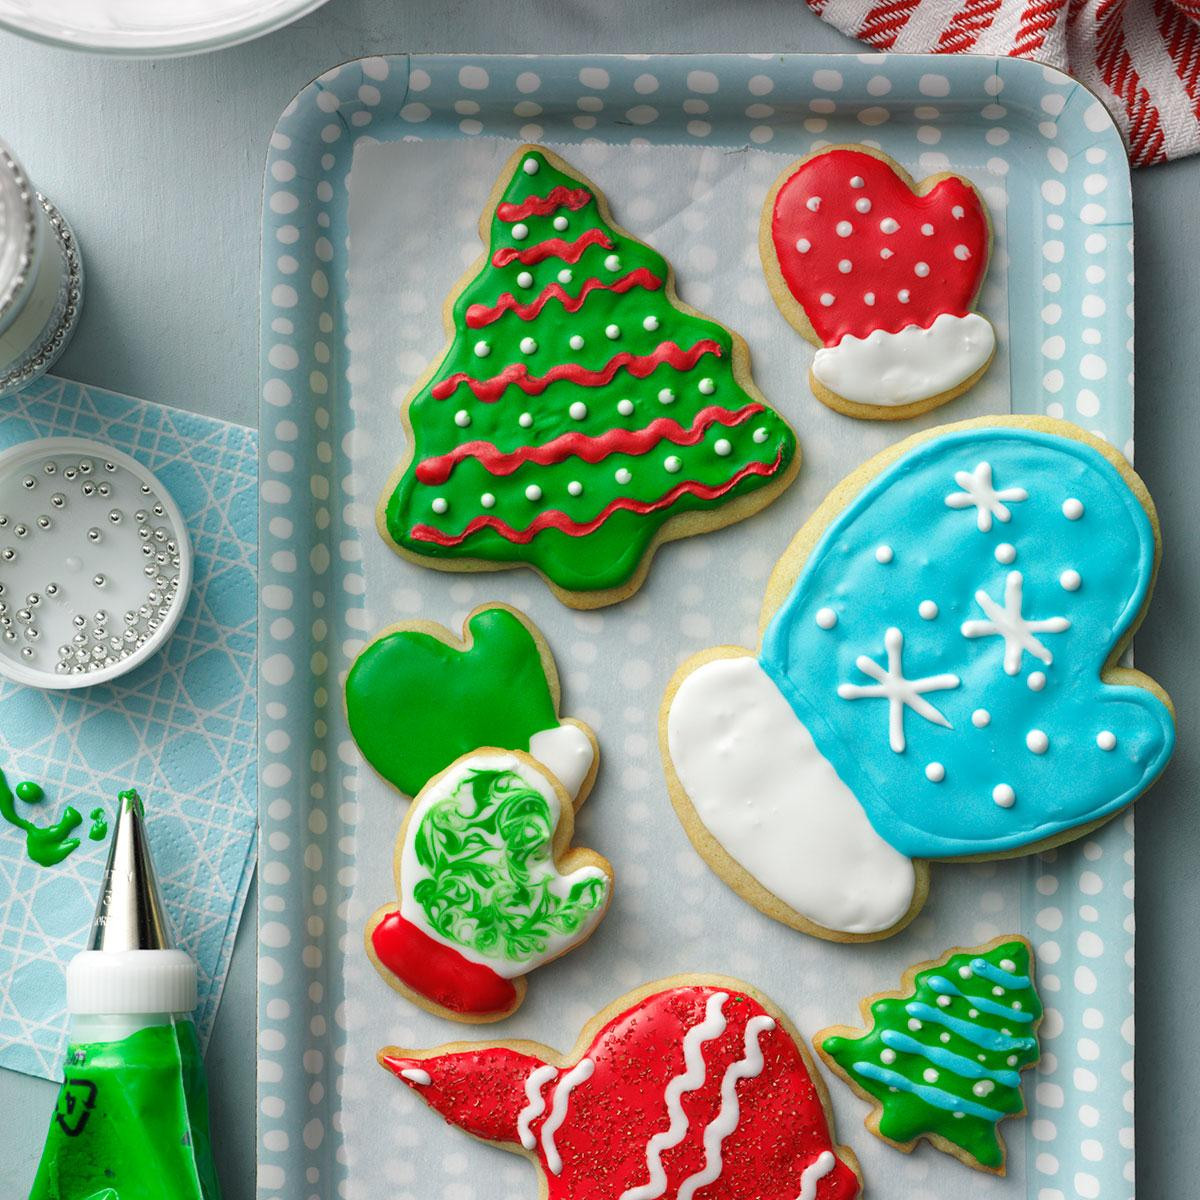 Decorated Christmas Cookies Recipes  Holiday Cutout Cookies Recipe